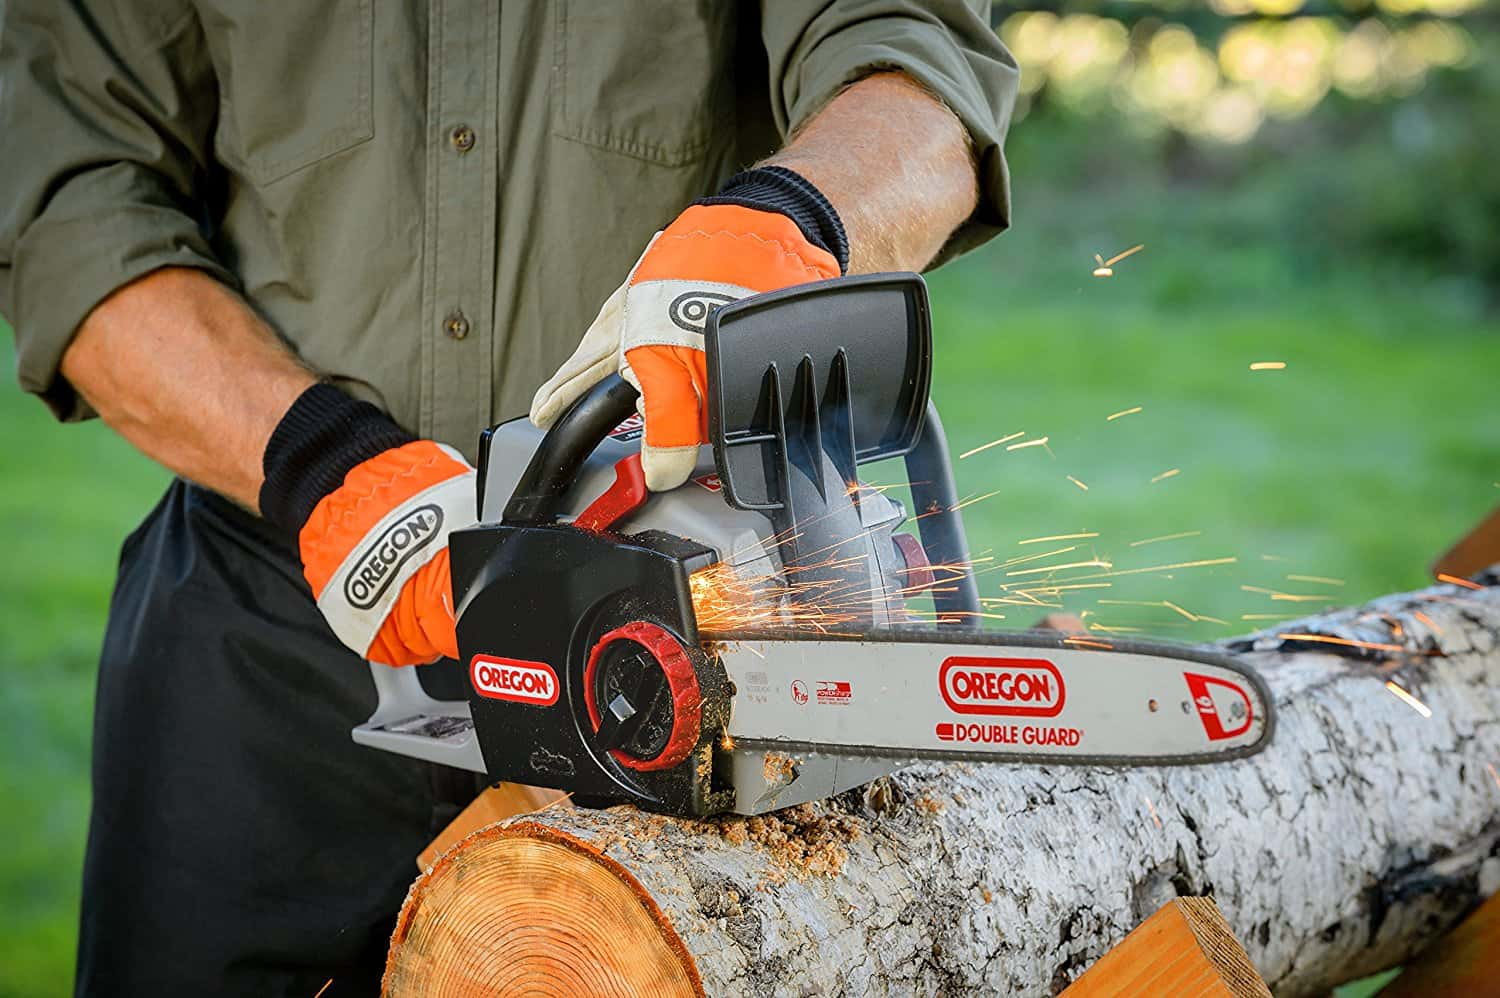 Chain_Saw_with_4.0_Ah_Battery_and_Charger